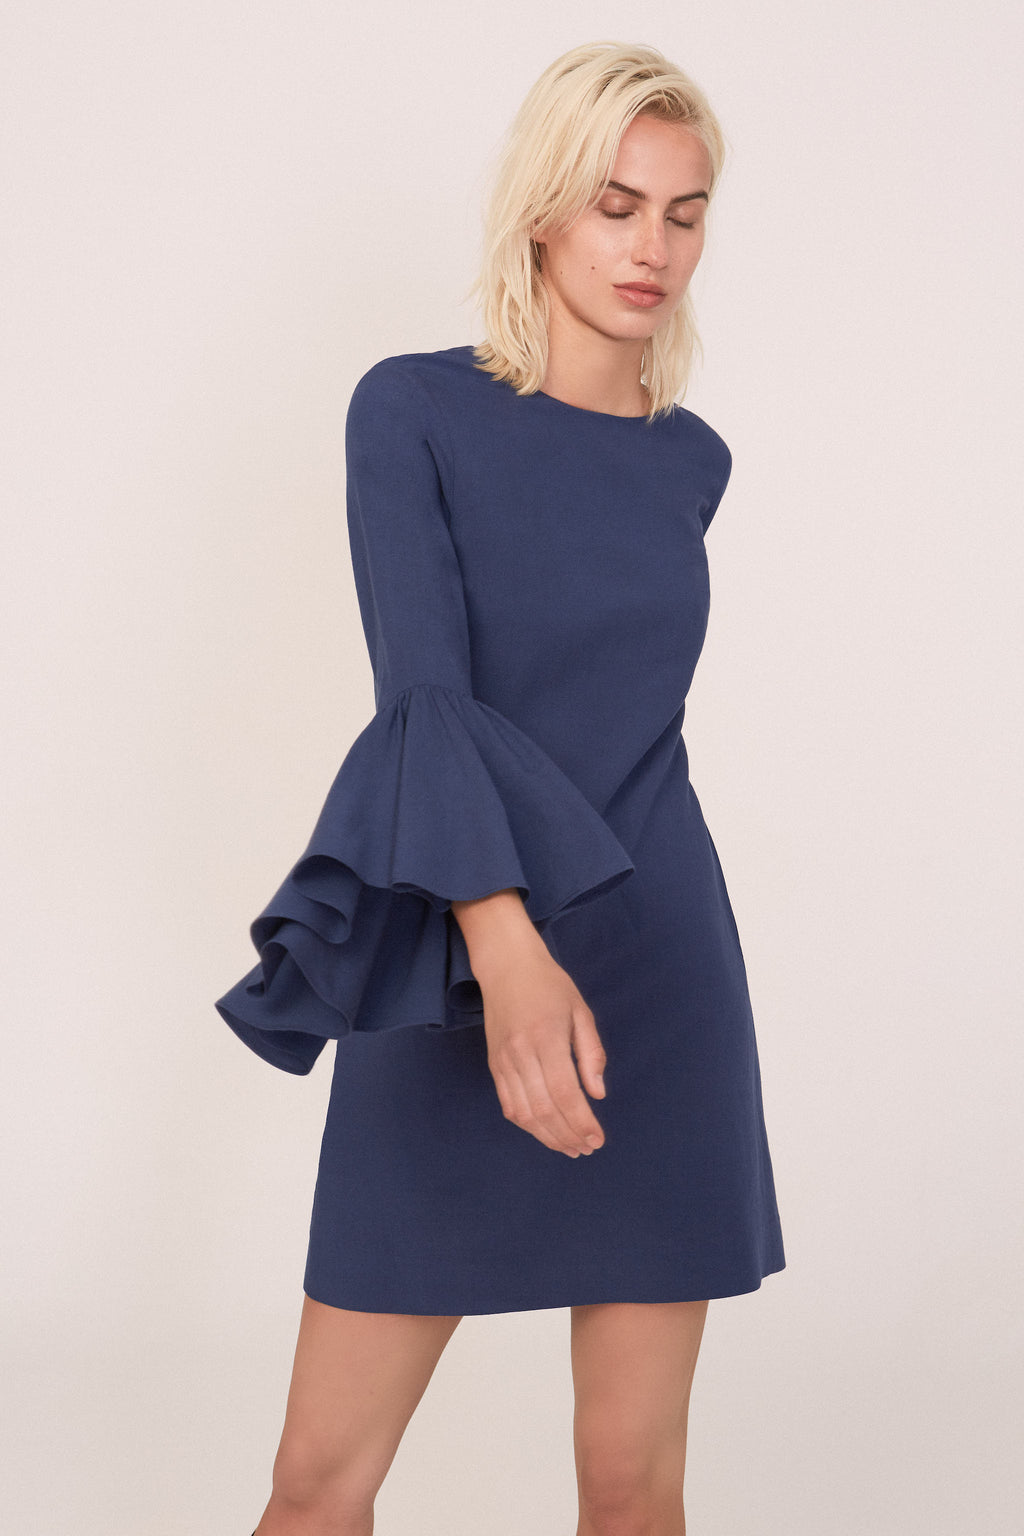 Neta Blue Dress - Etxart & Panno USA